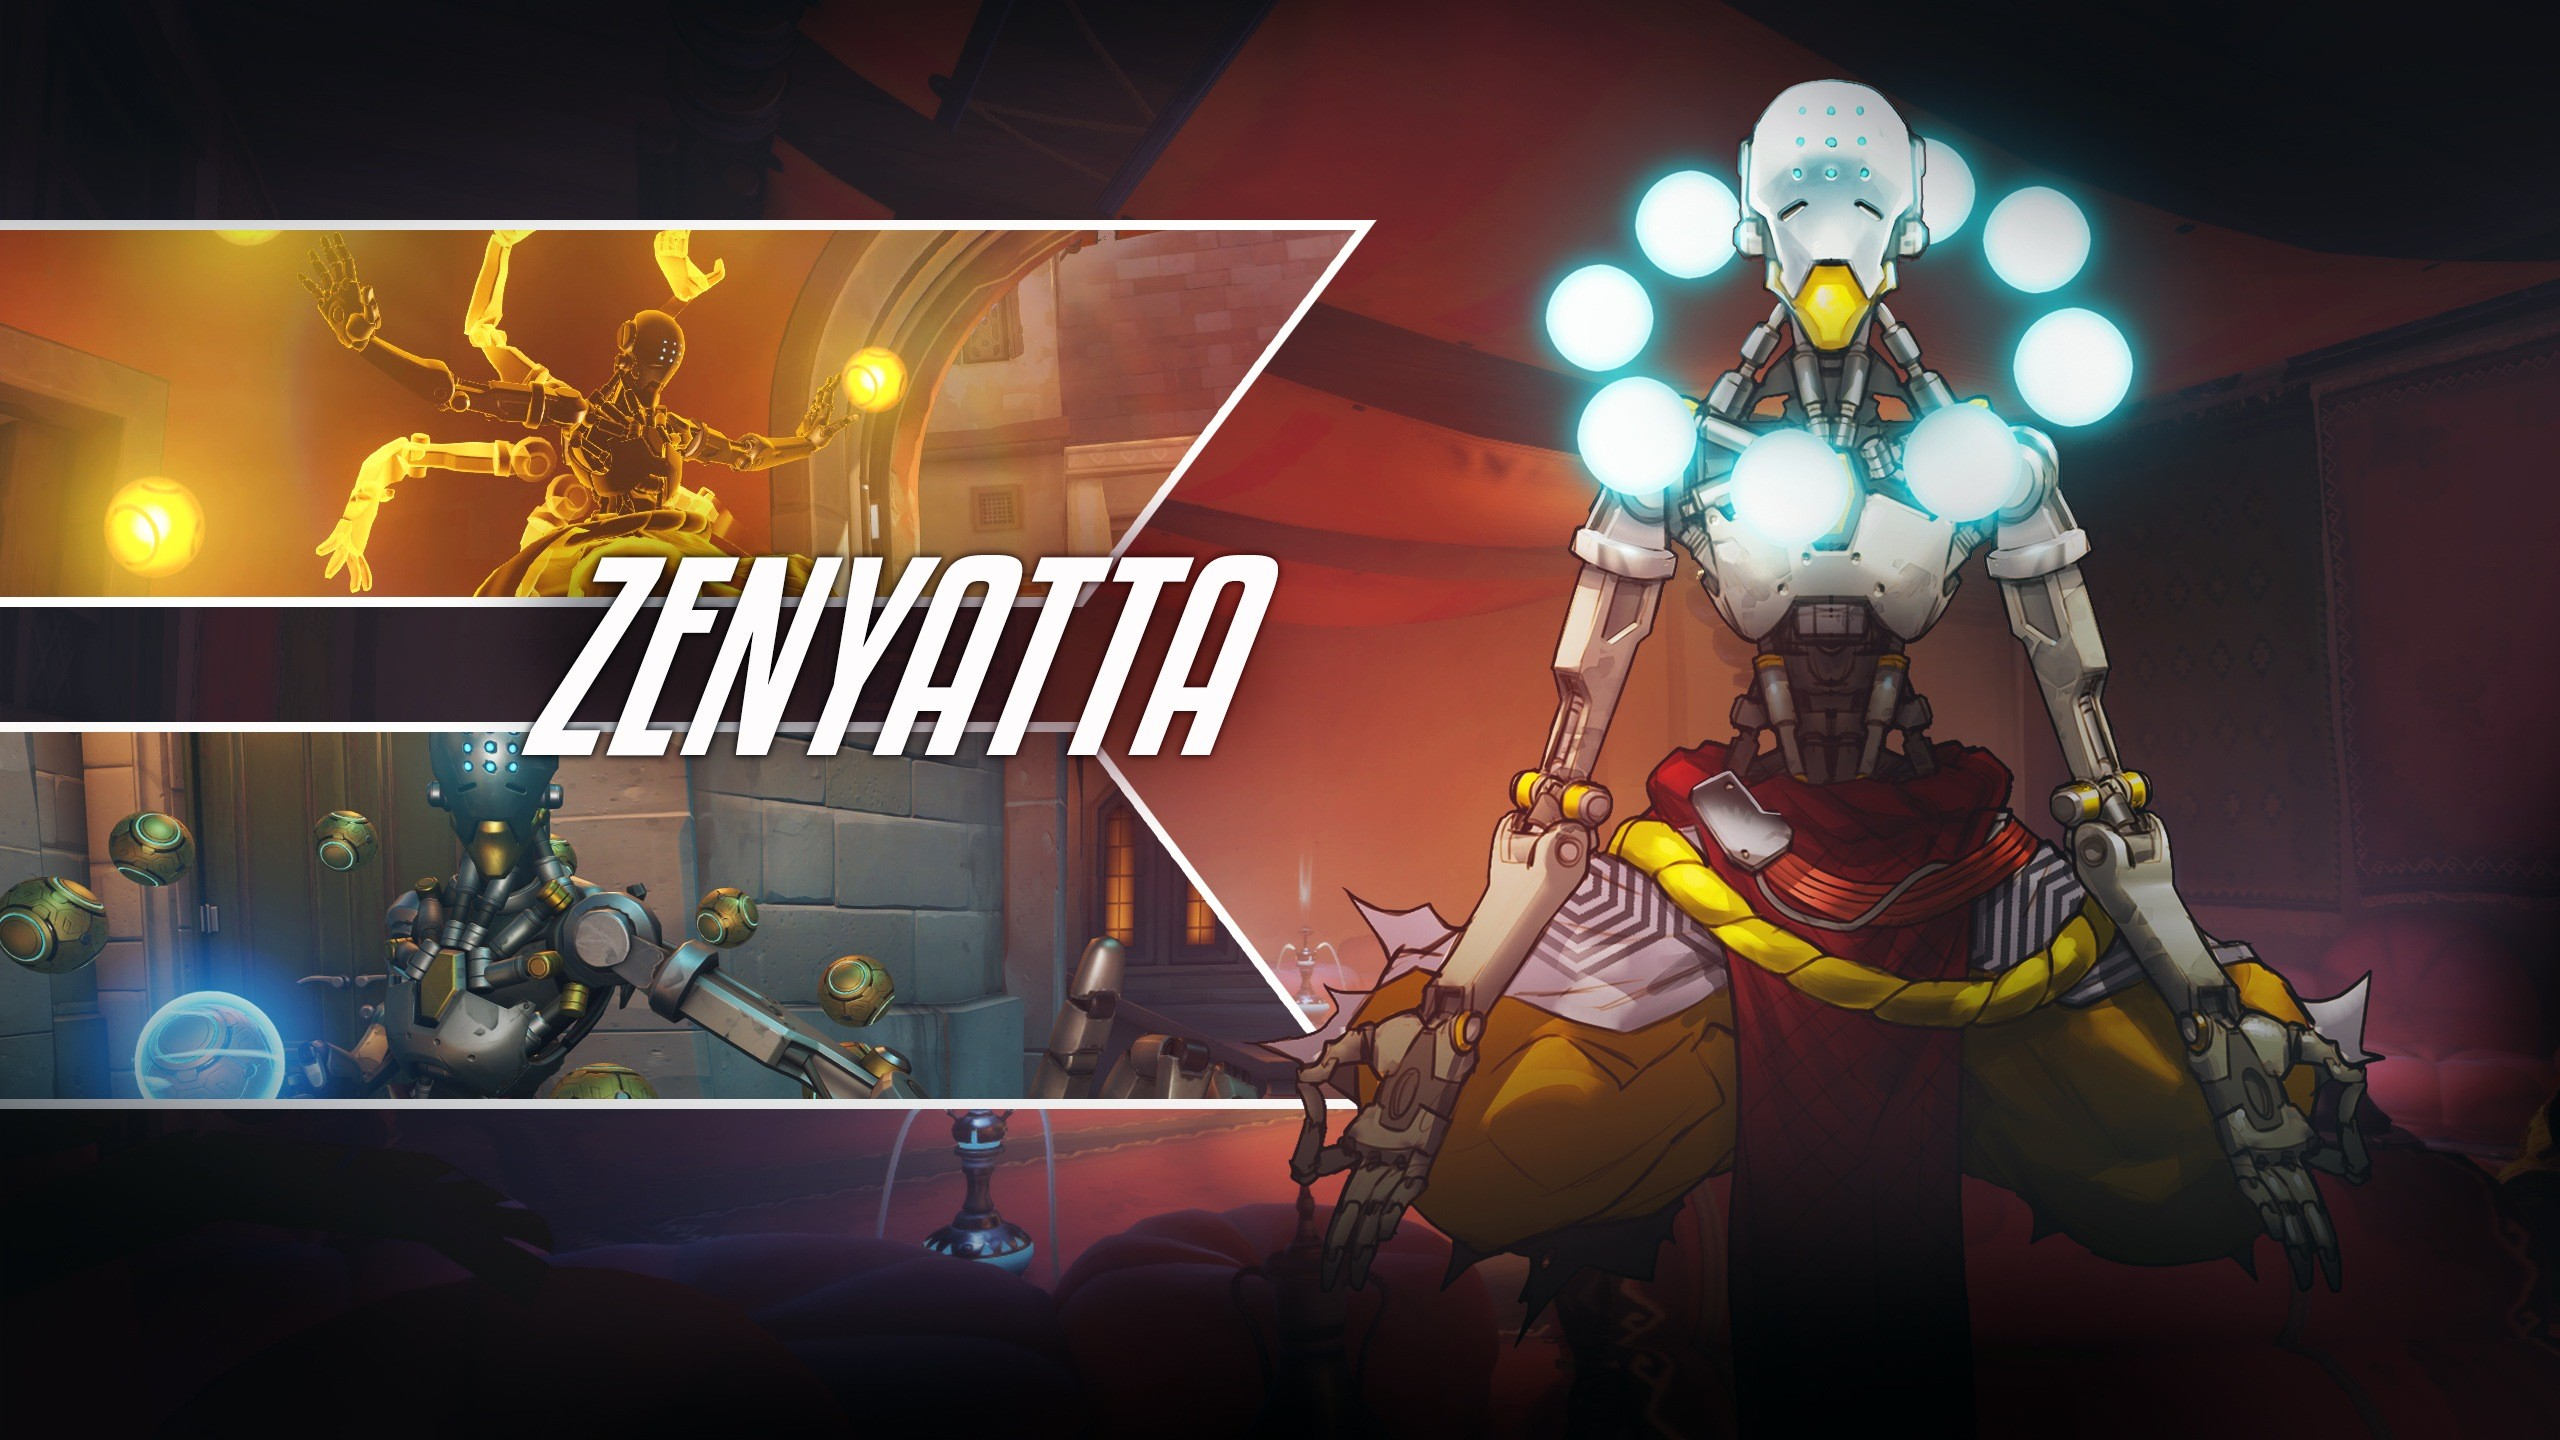 2560x1440 Overwatch Zenyatta Wallpaper Images